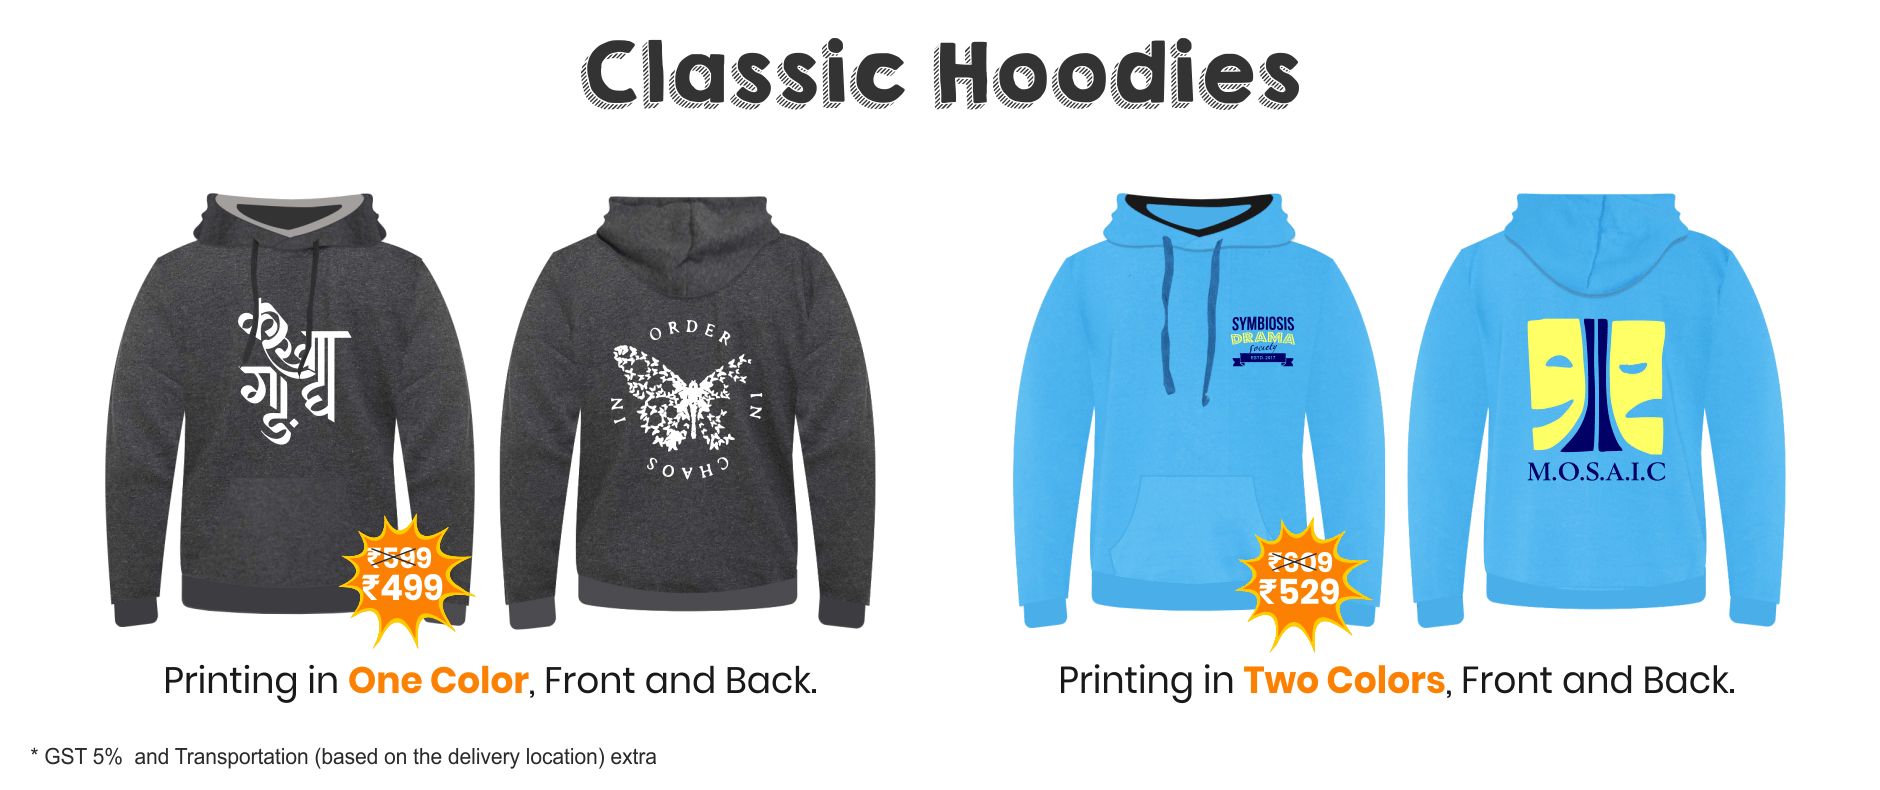 Pricing for Classic Hoodies for Fest